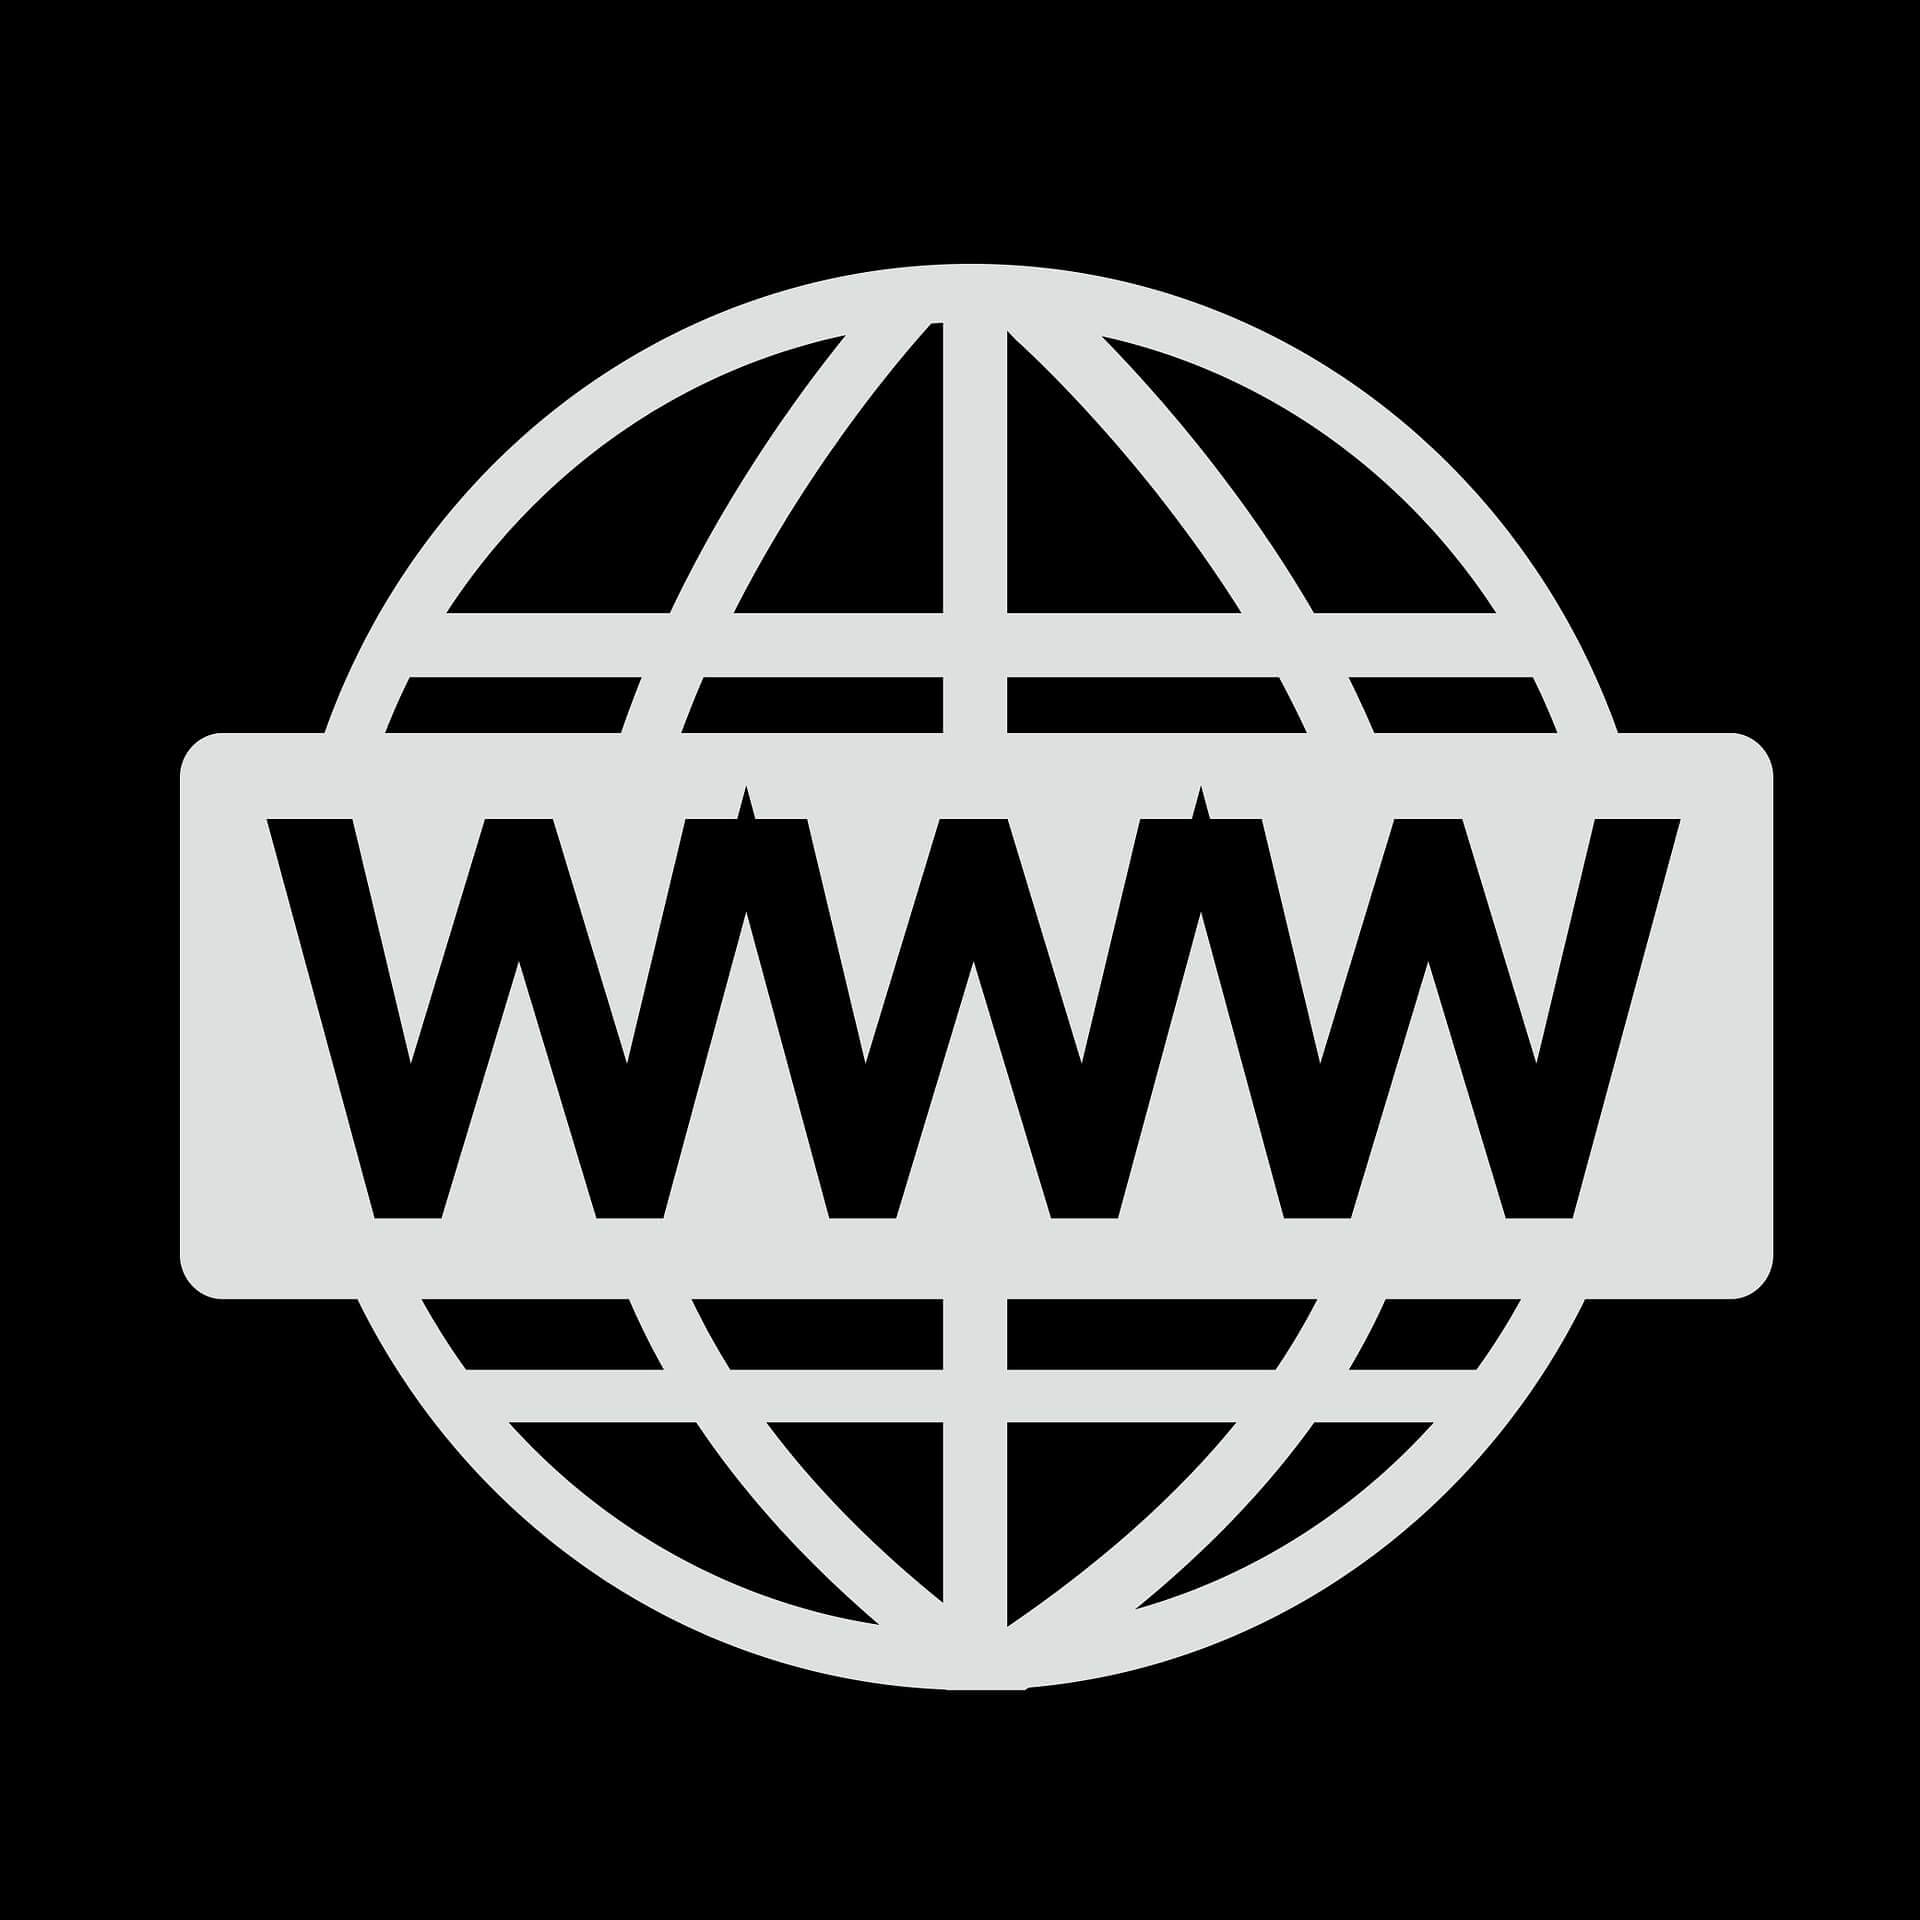 Do You Need www in Web Address